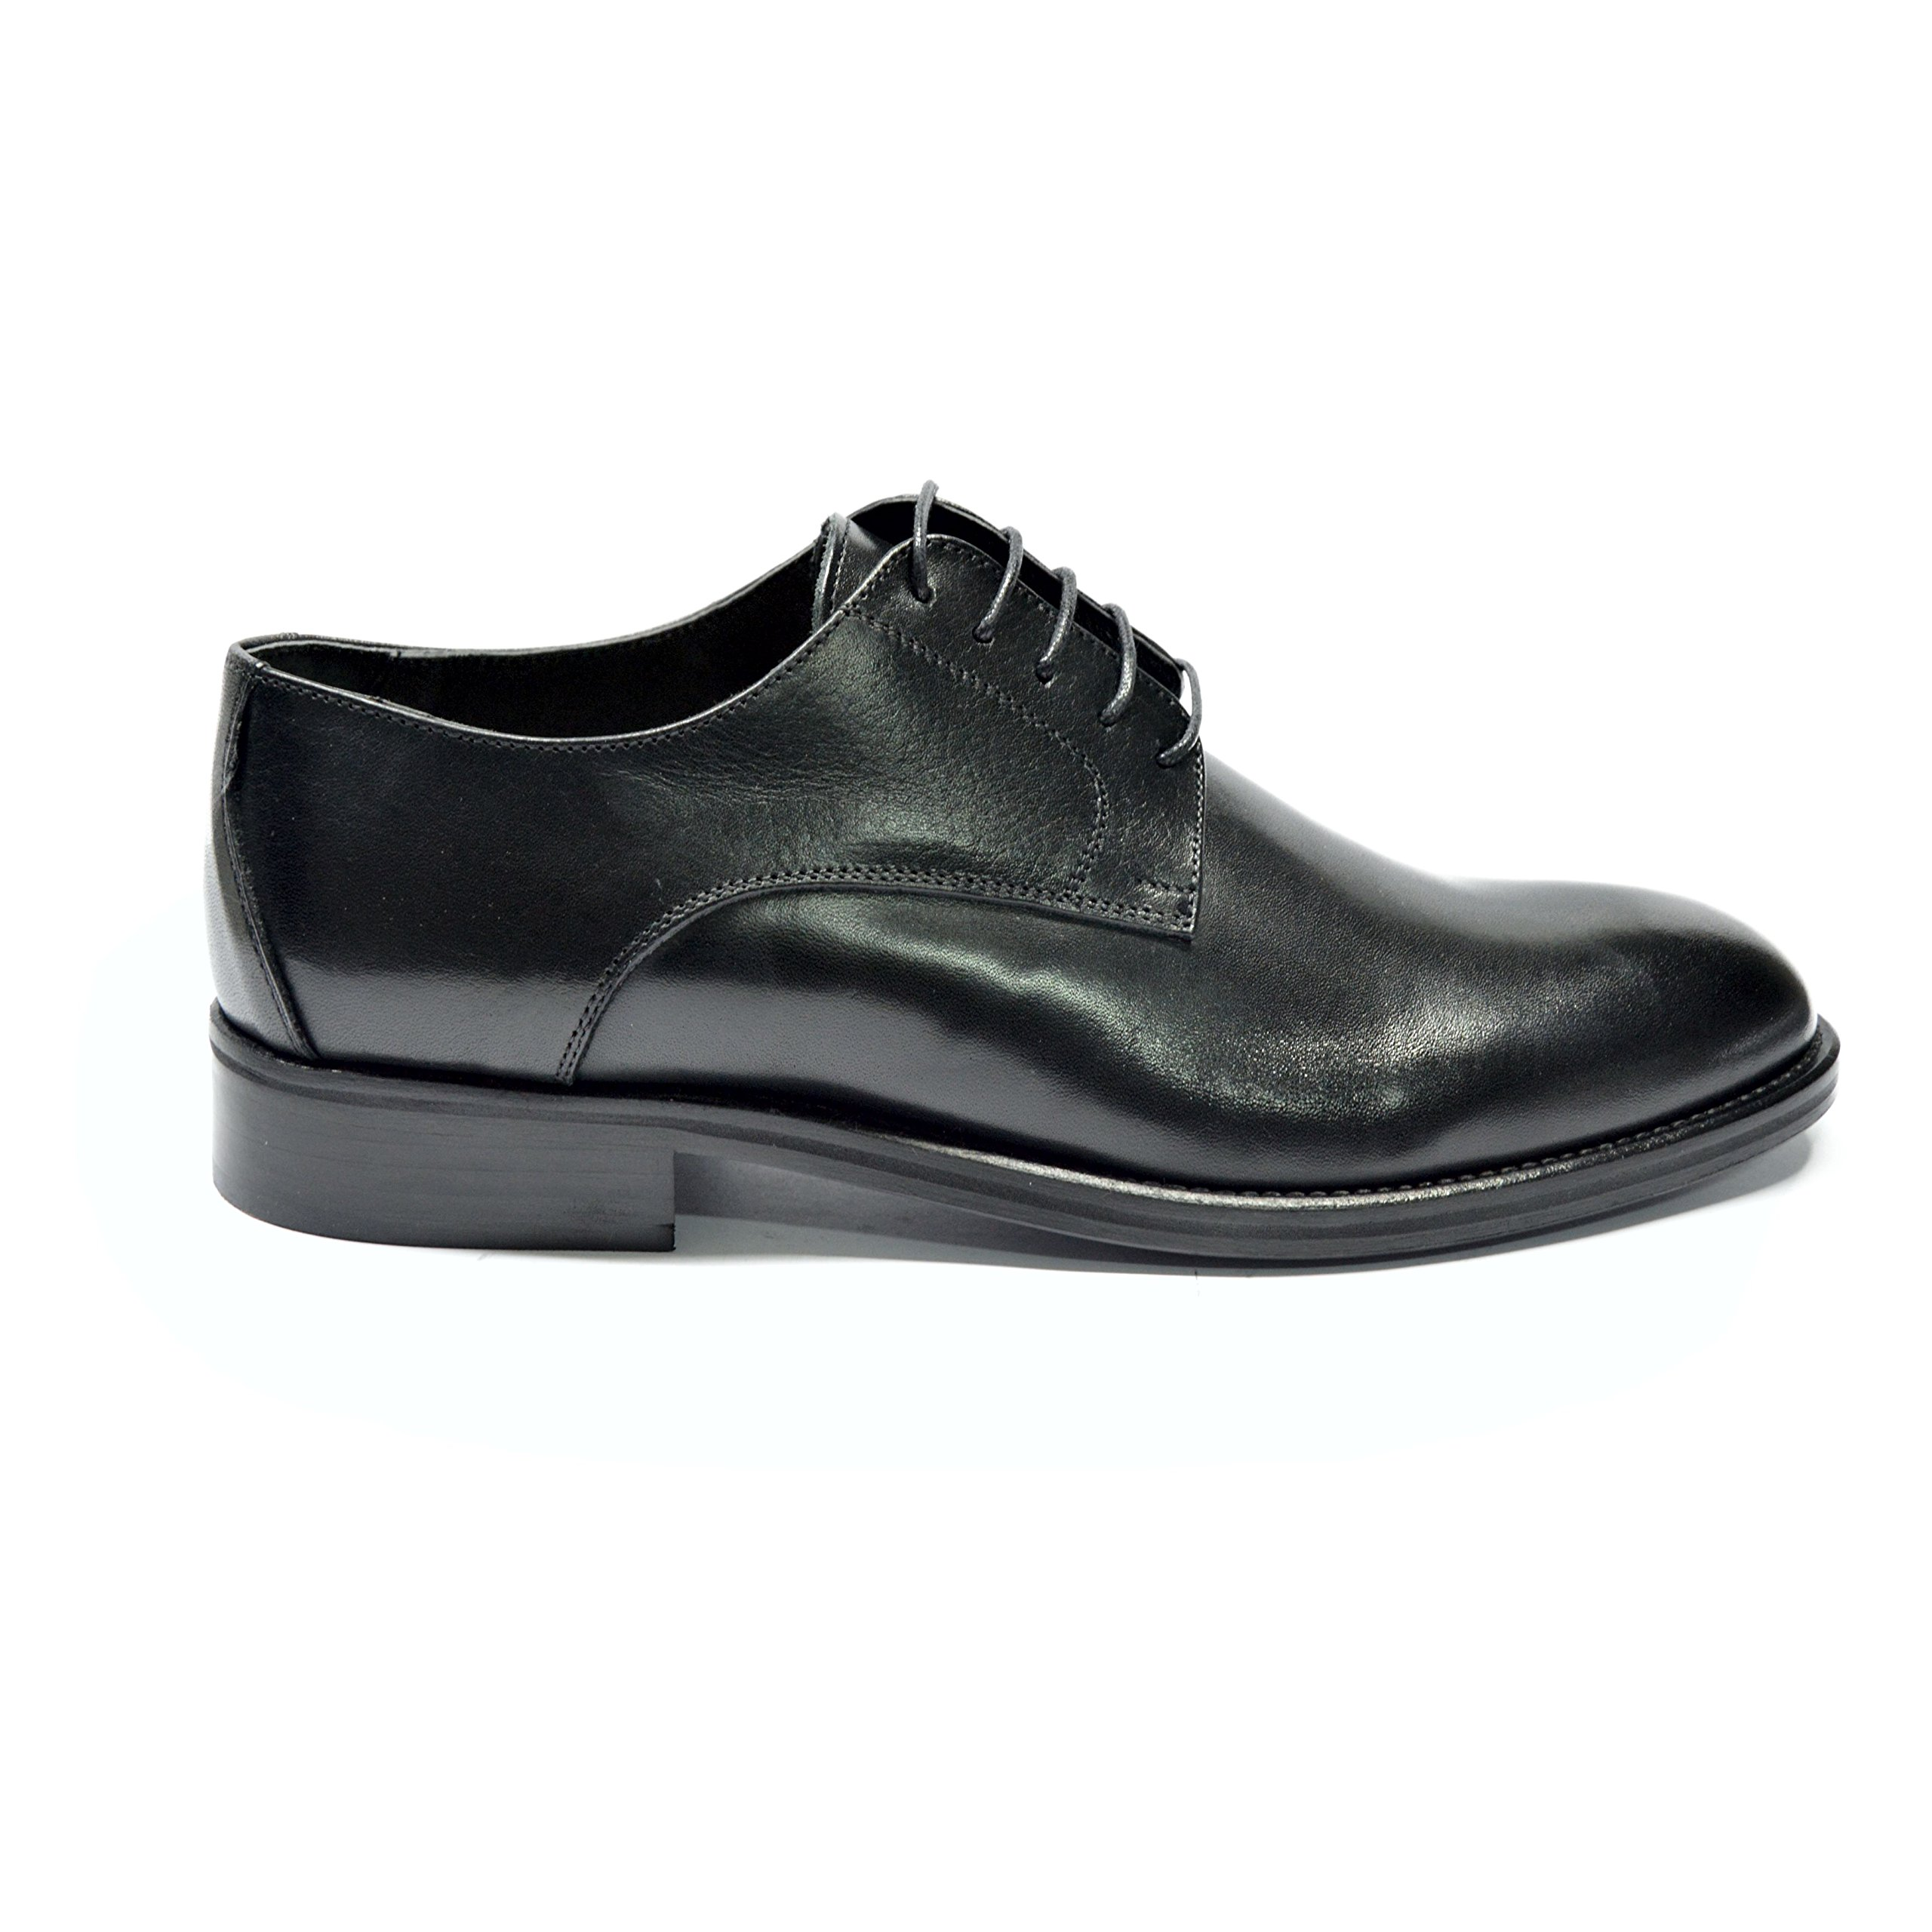 DRUDD USANSON Blk - Men's Black Leather Oxford Dress Wedding Shoes, With Leather Sole, Men US 9 by DRUDD